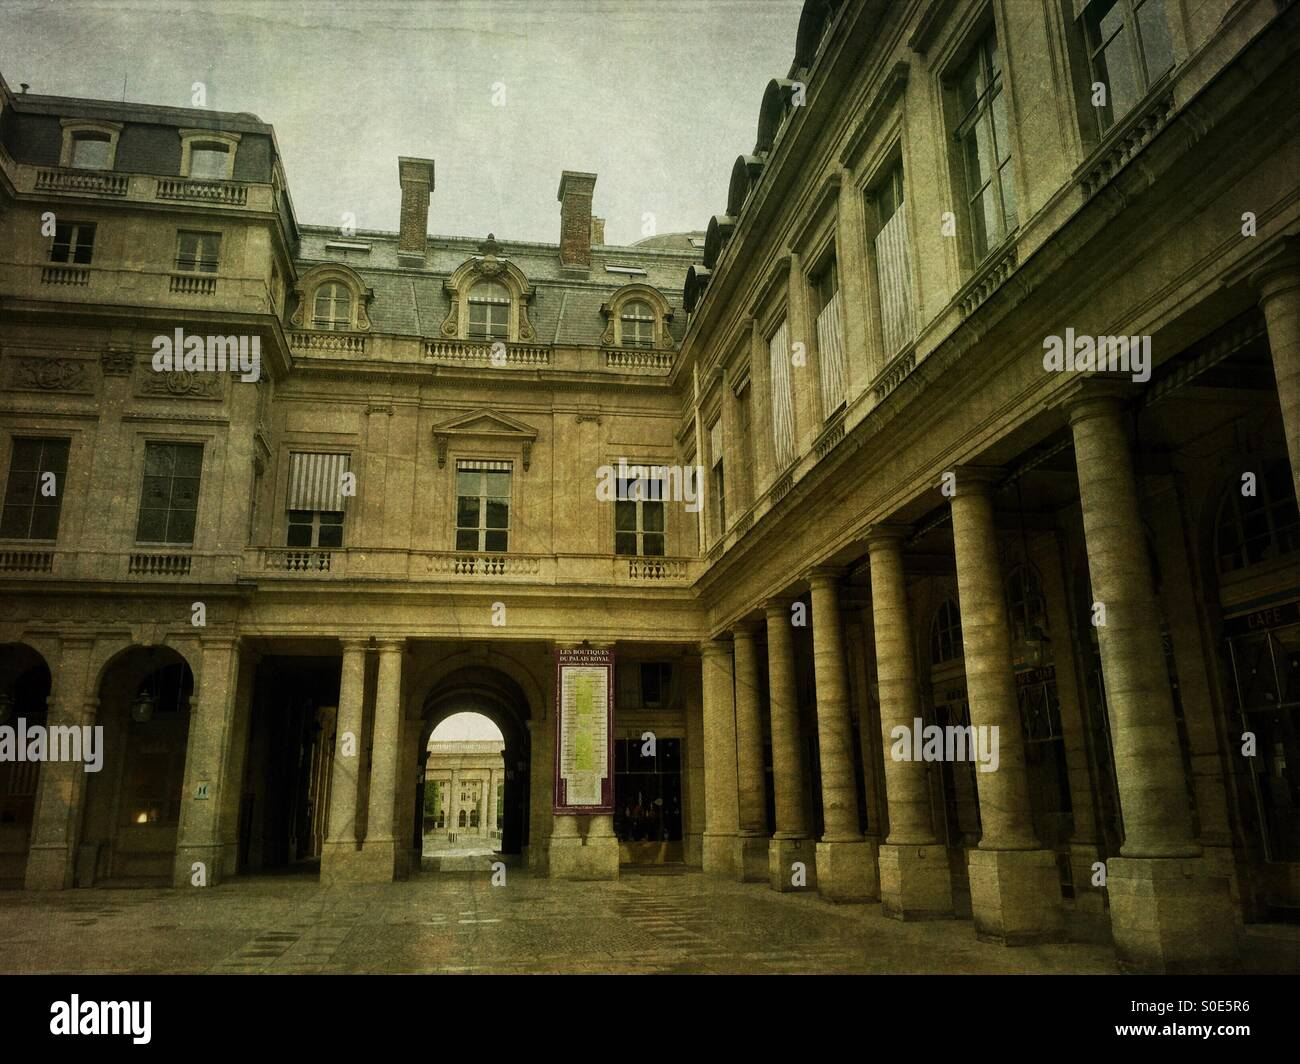 View of entrance to the galleries of the Place du Palais-Royal in Paris, France, with colossal pilasters of compositeStock Photo